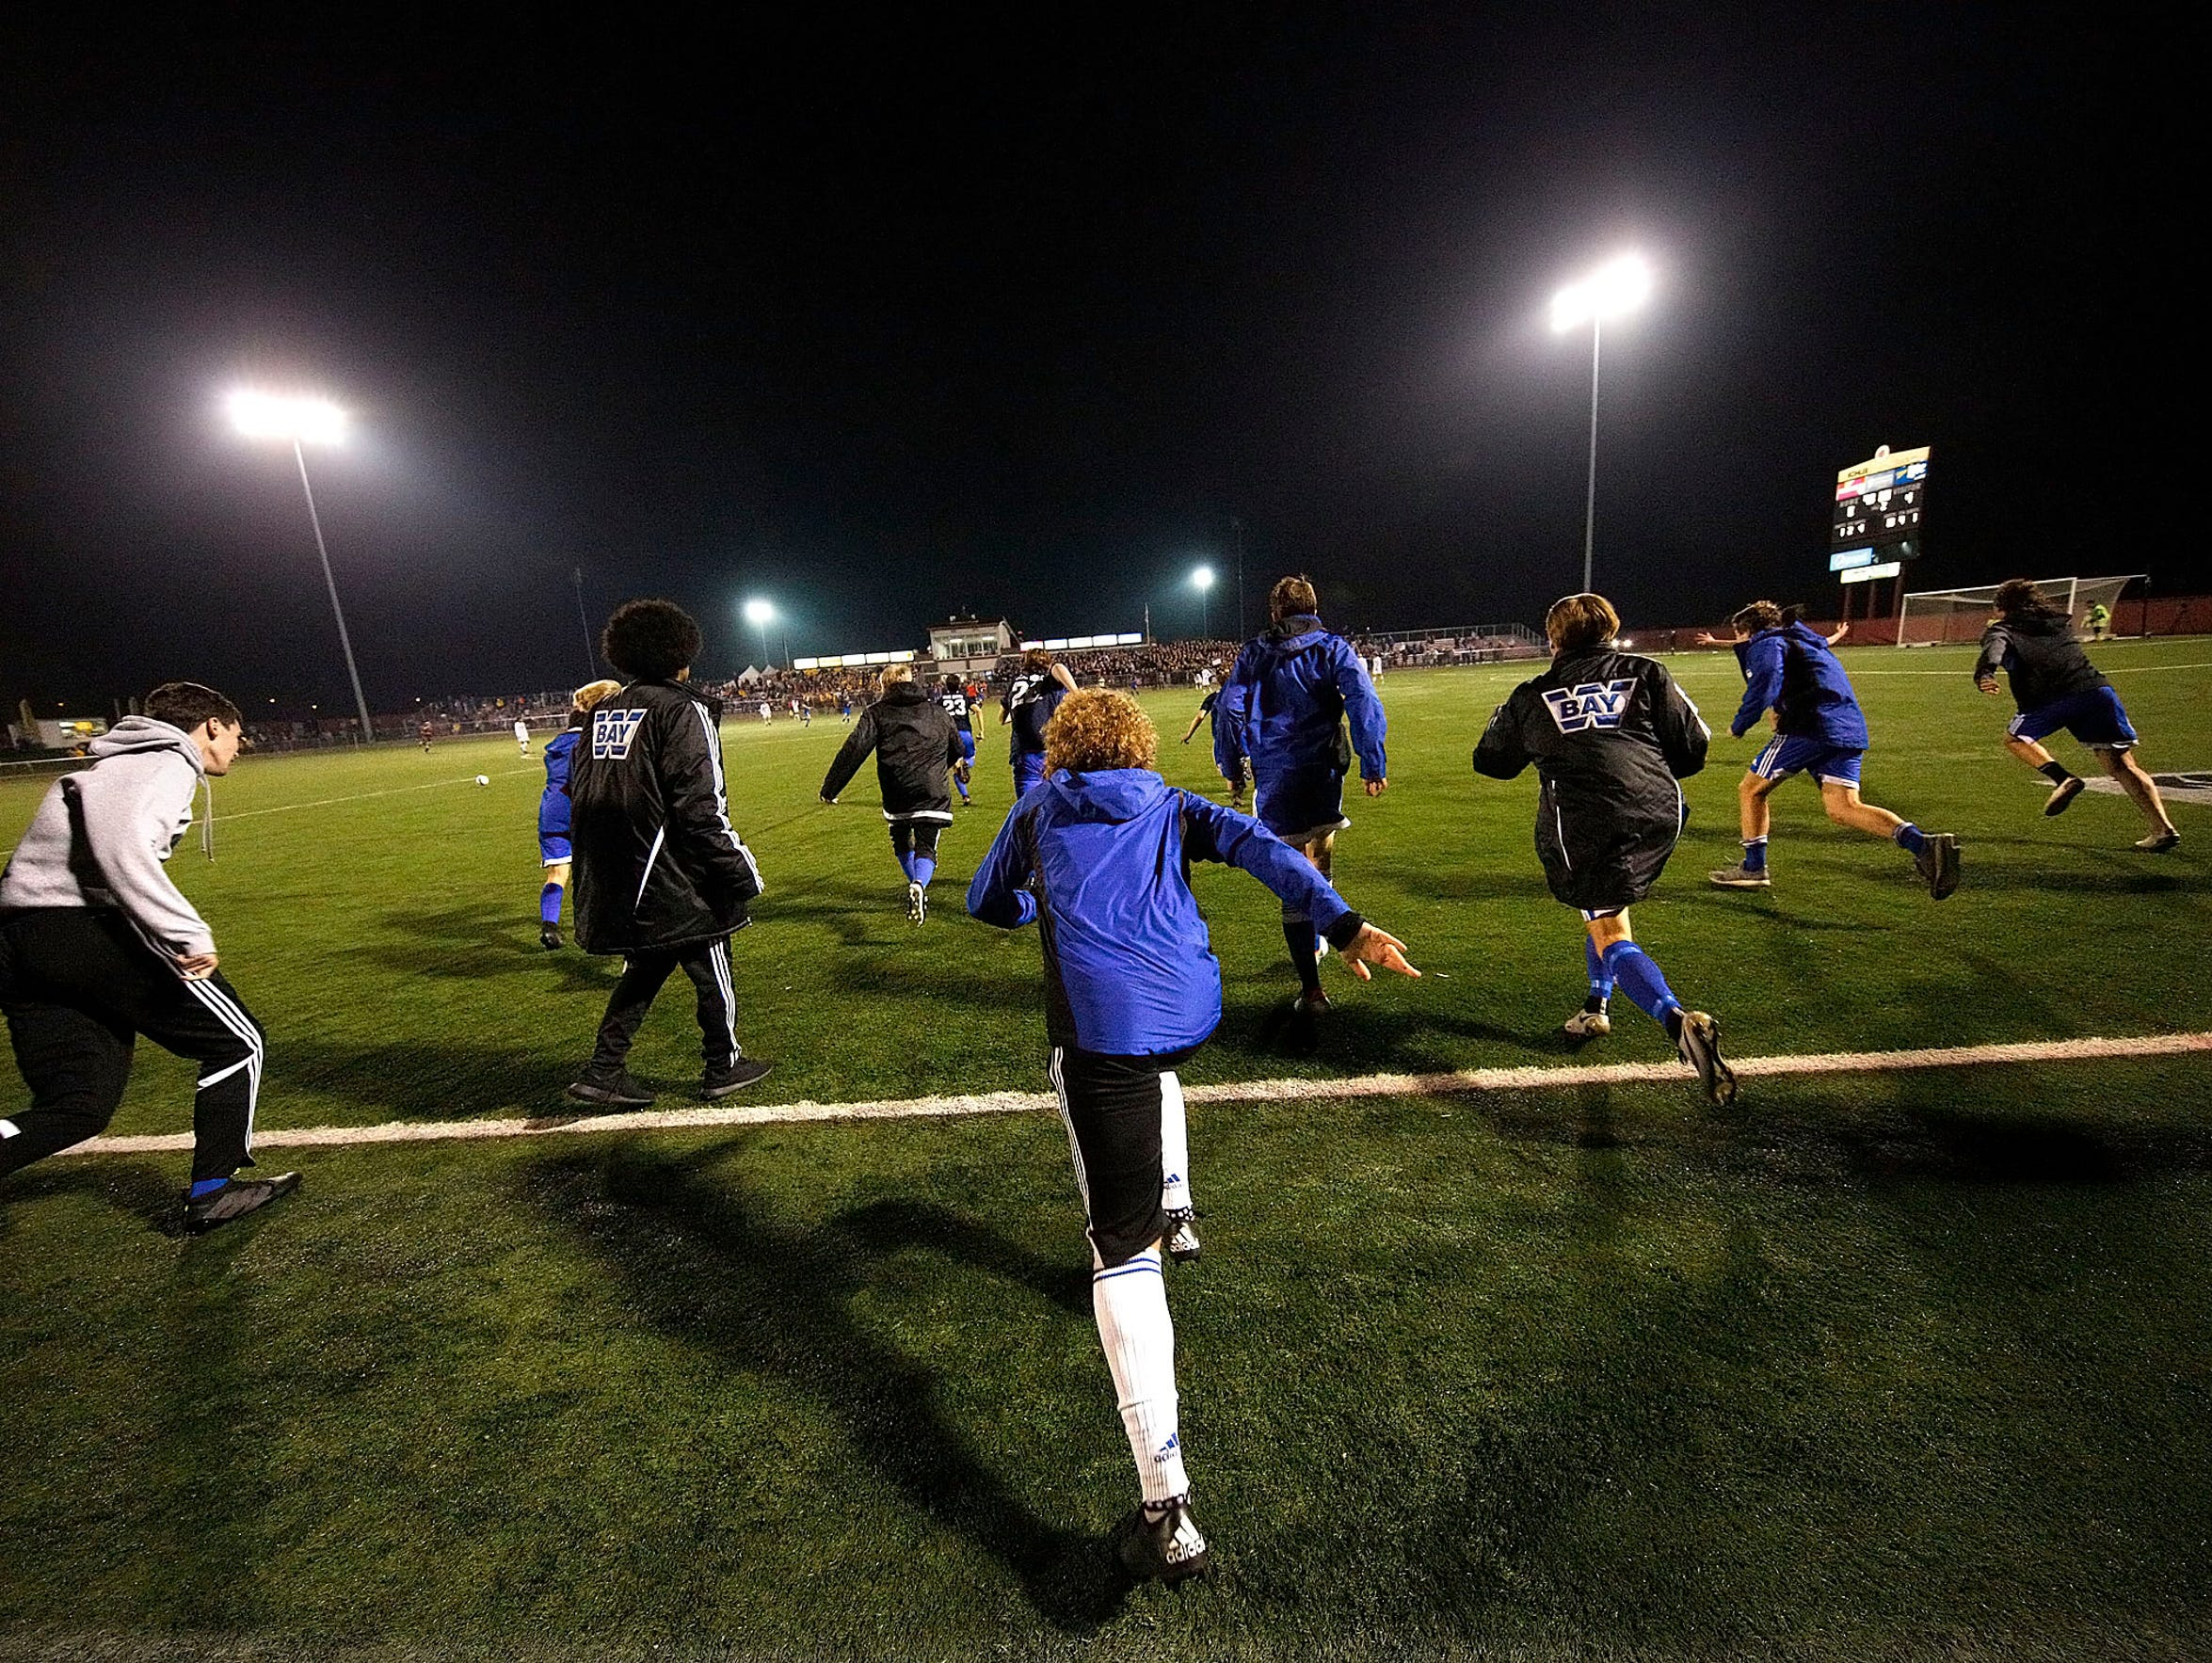 Bay soccer players rush the field following their victory